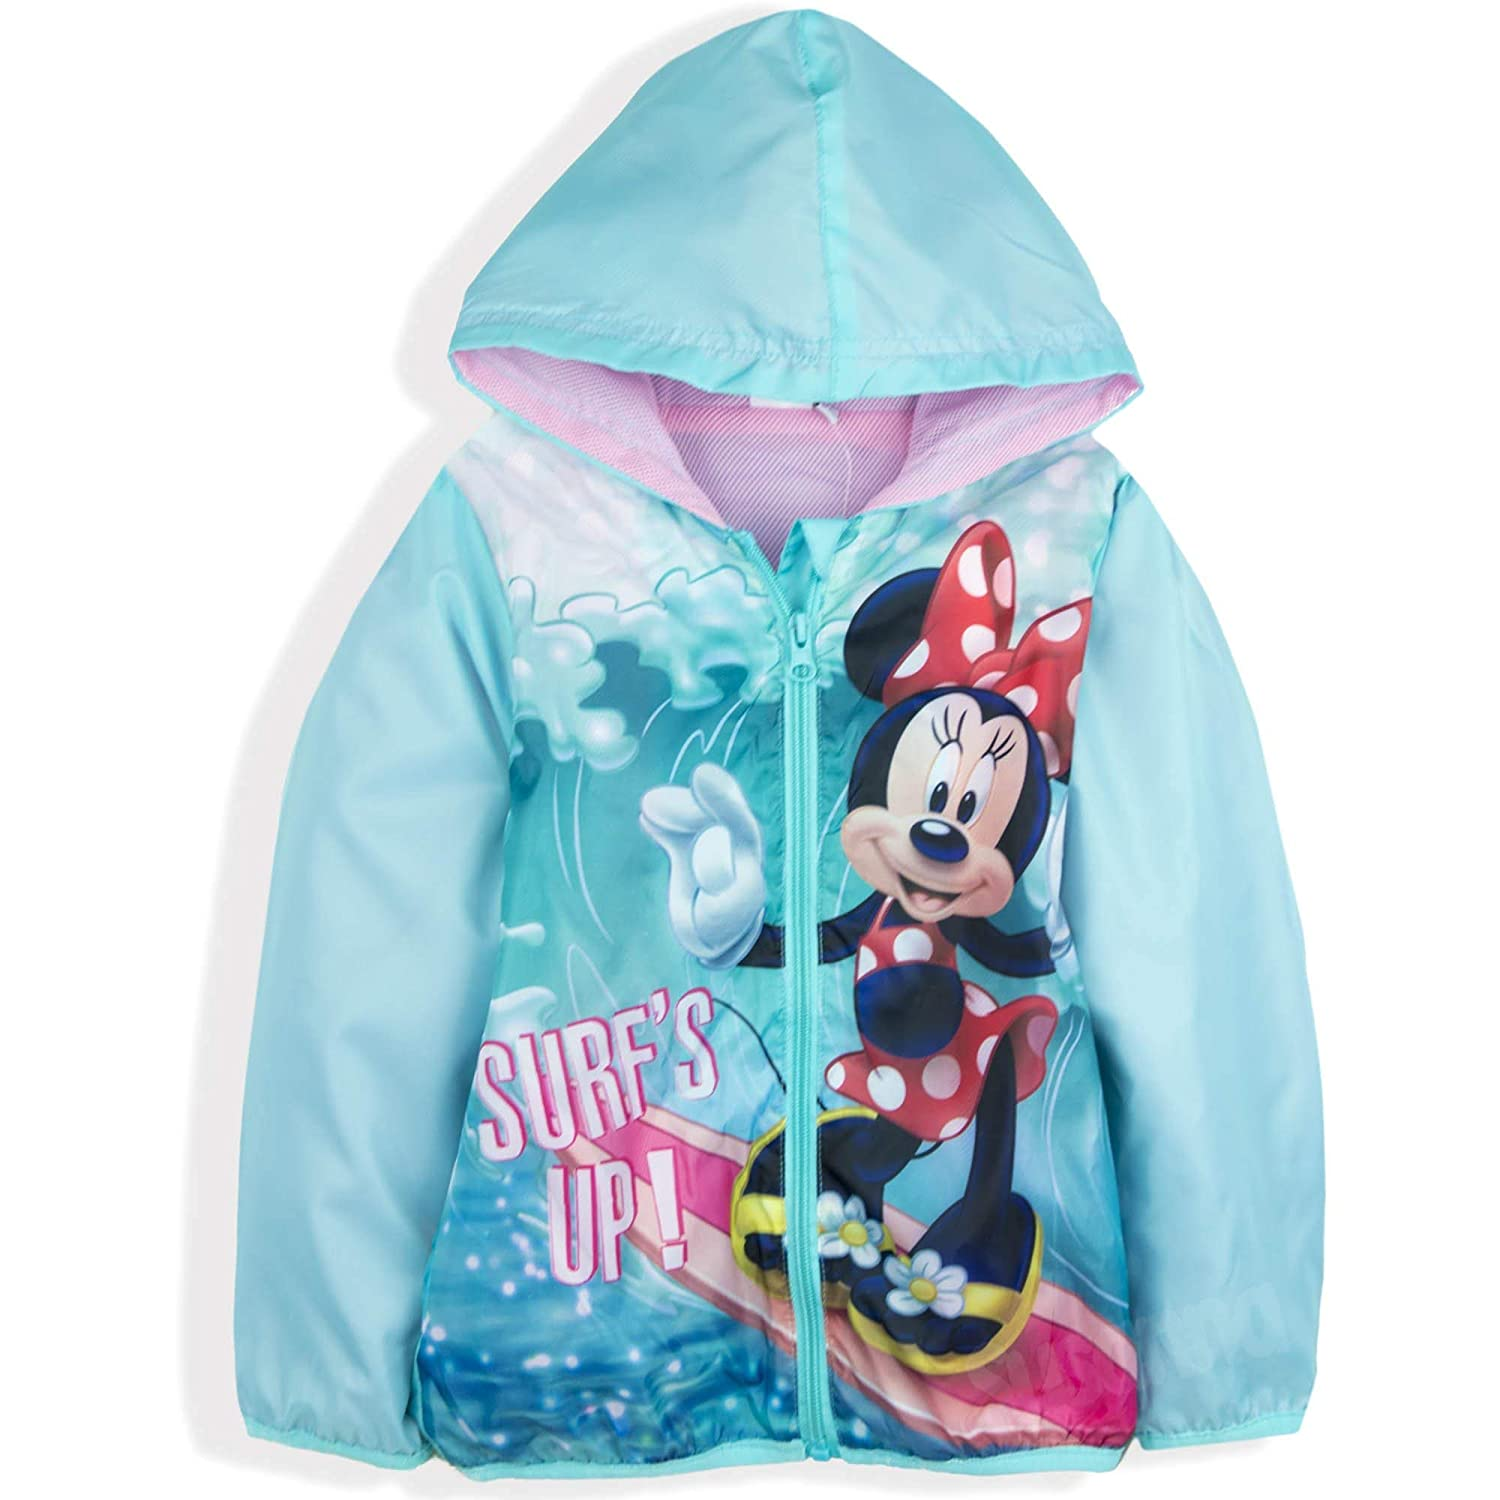 Spring Summer Lightweight Coat Windbreaker 3-8 Years New 2018 Disney Minnie Mmouse Official Licensed Girls Jacket